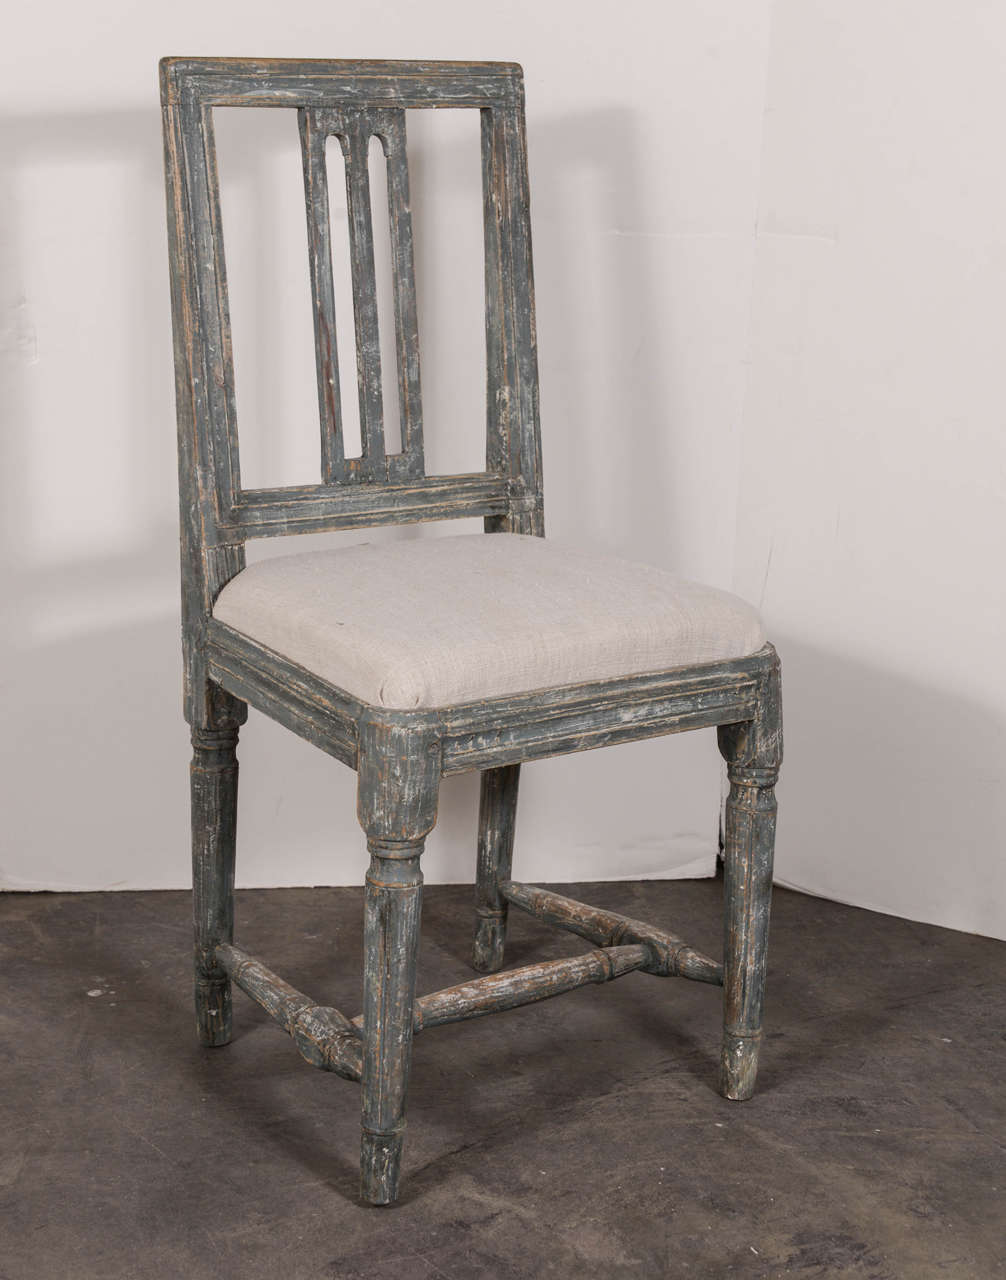 Swedish Gustavian Blue Painted Slat Back Dining Chairs from circa 1790 For Sale 1